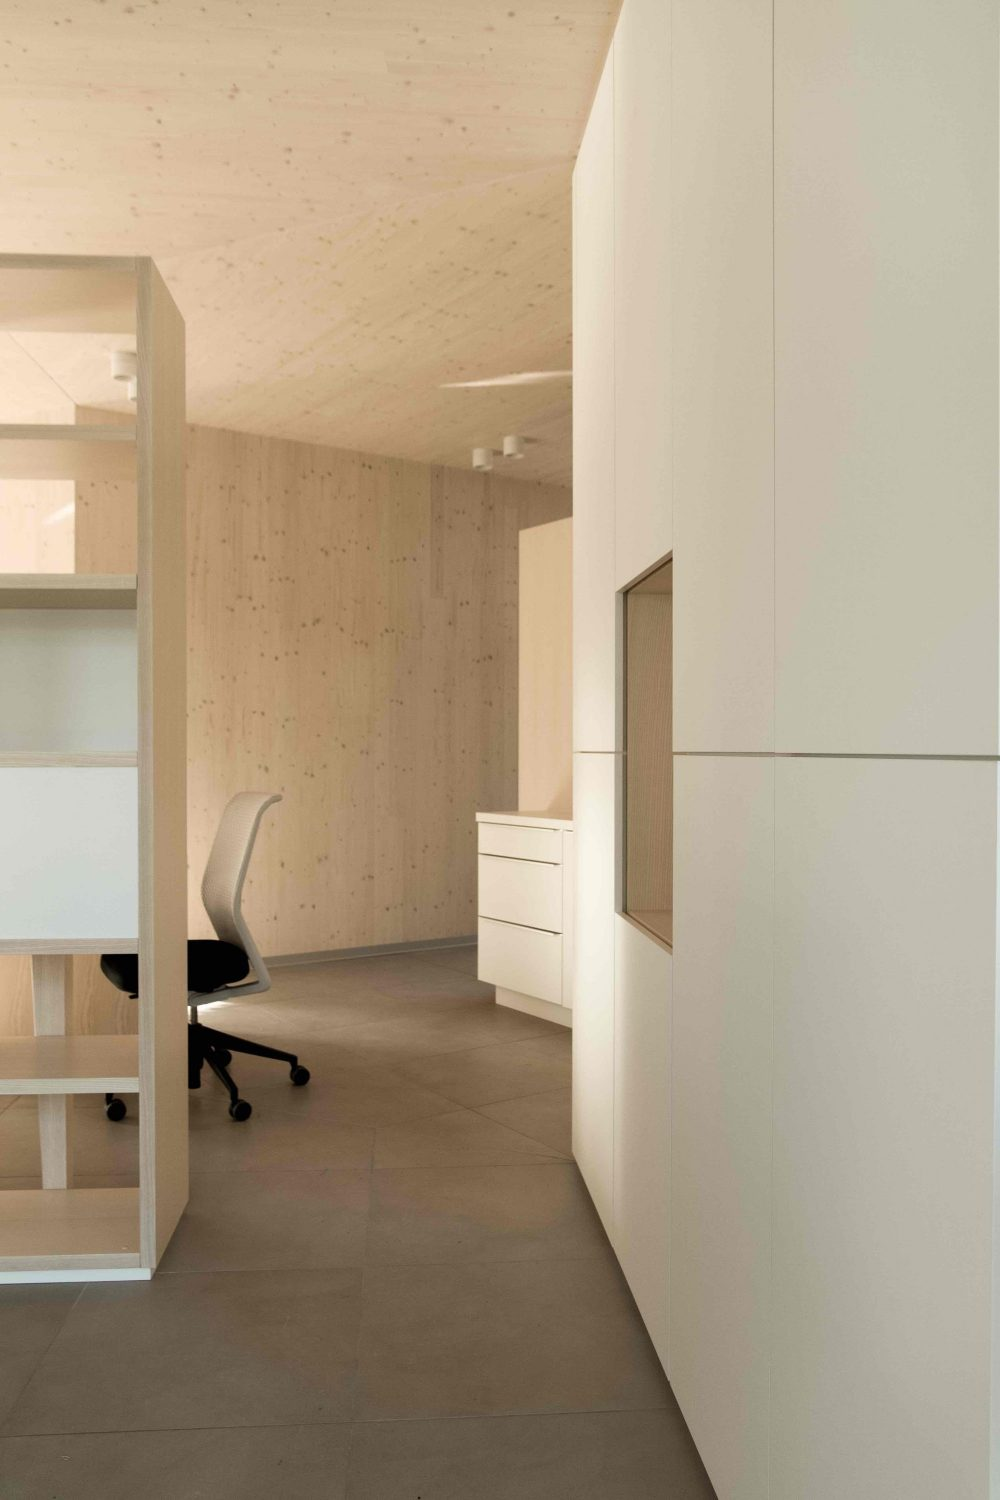 52 Cubic Wood by JOSEP and Atelier Haumer